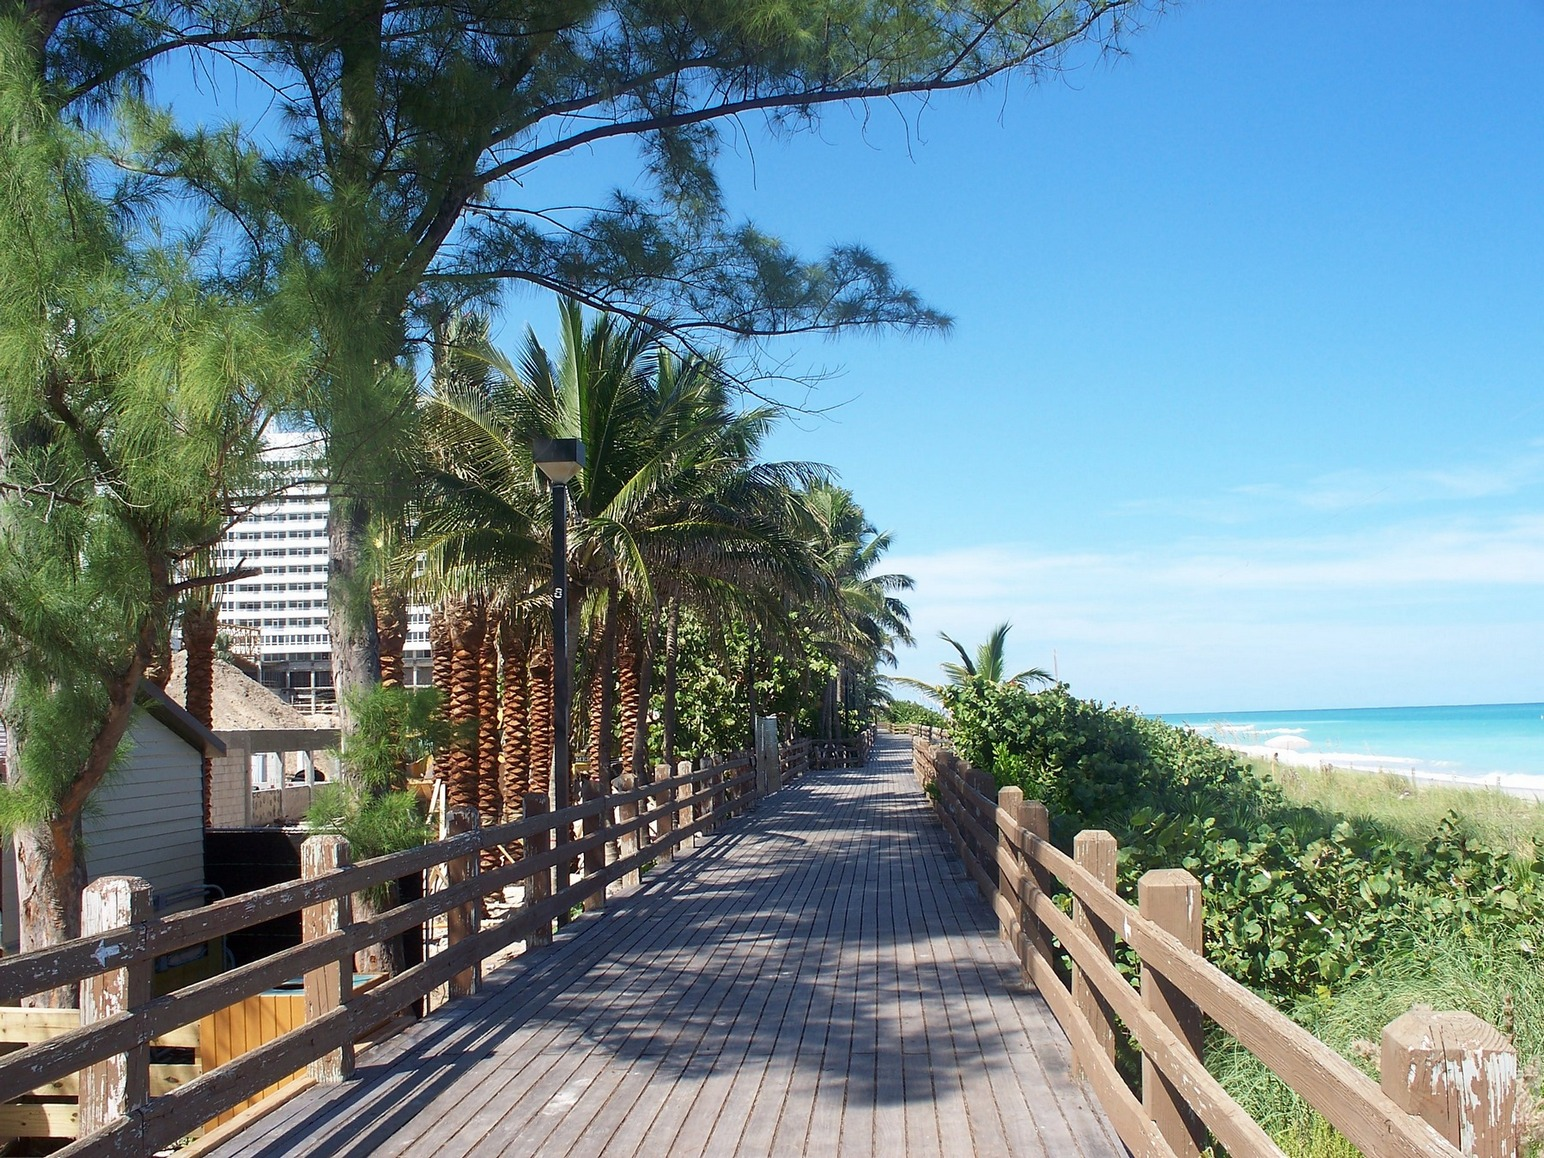 Boardwalk 2, Miami, South Beach